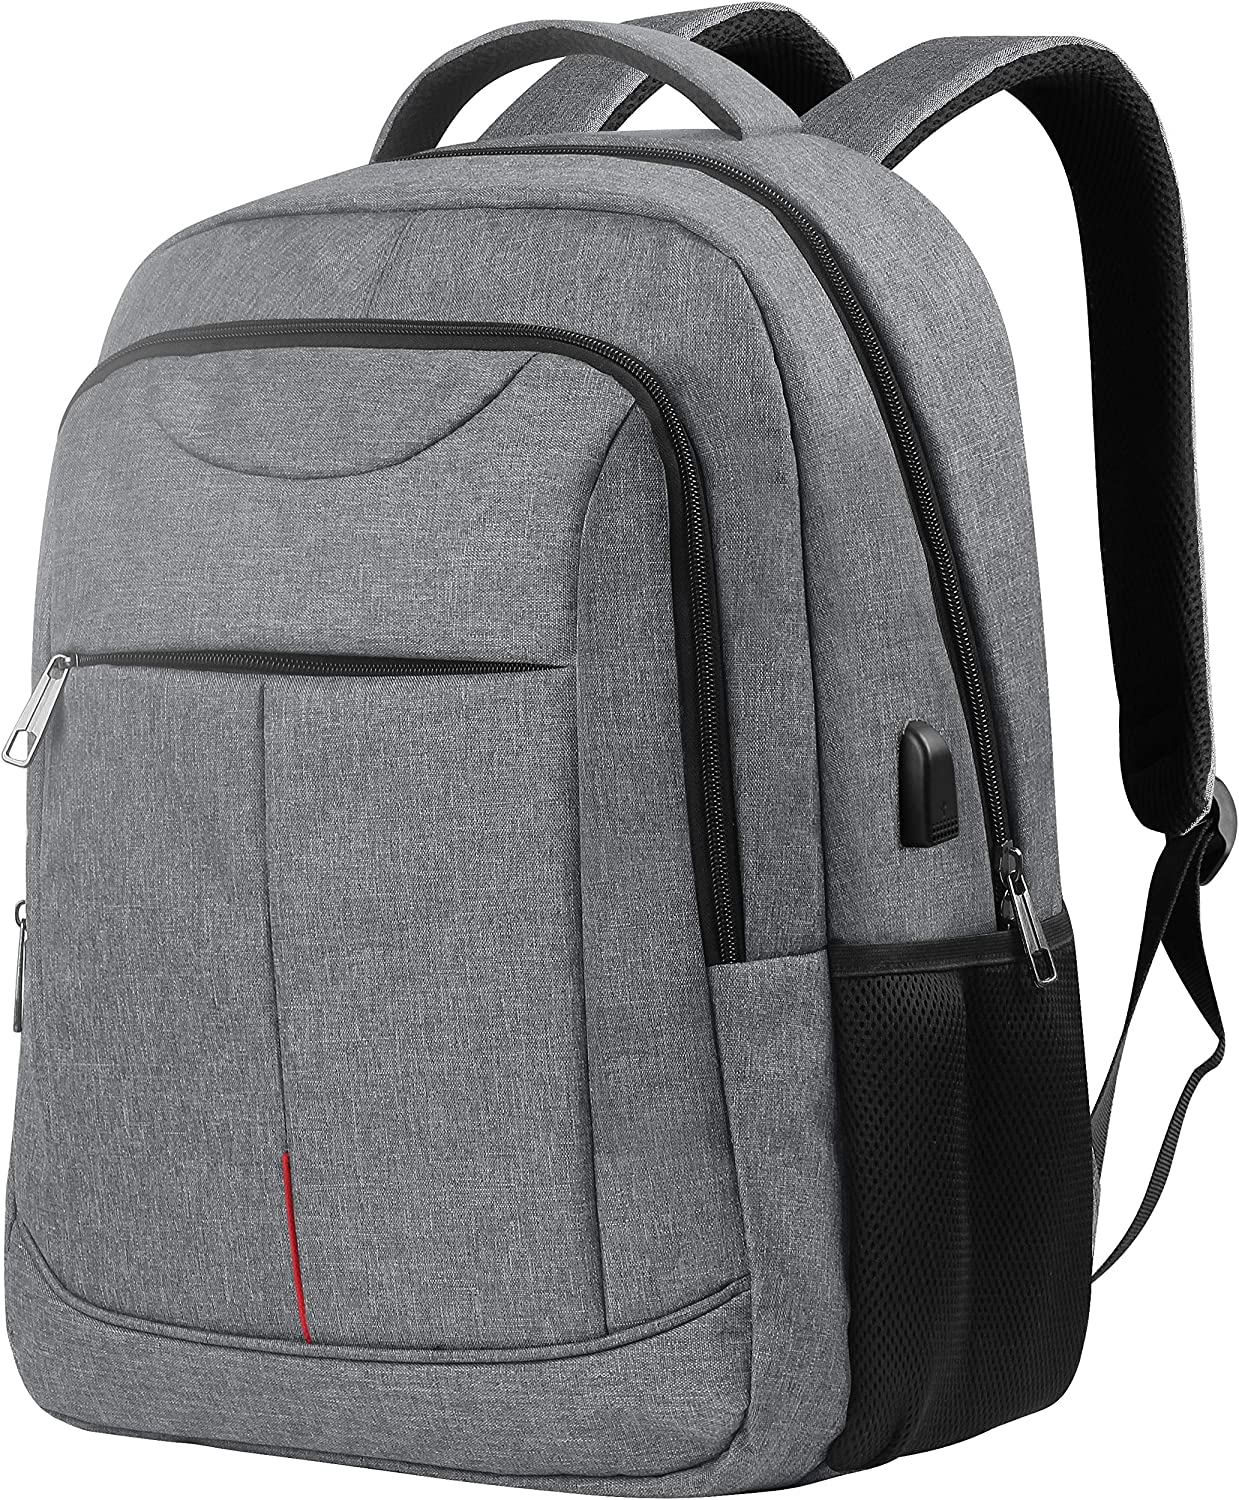 Tech Laptop Backpack for Men,Travel Business Durable Laptop Backpacks with USB Charging Port